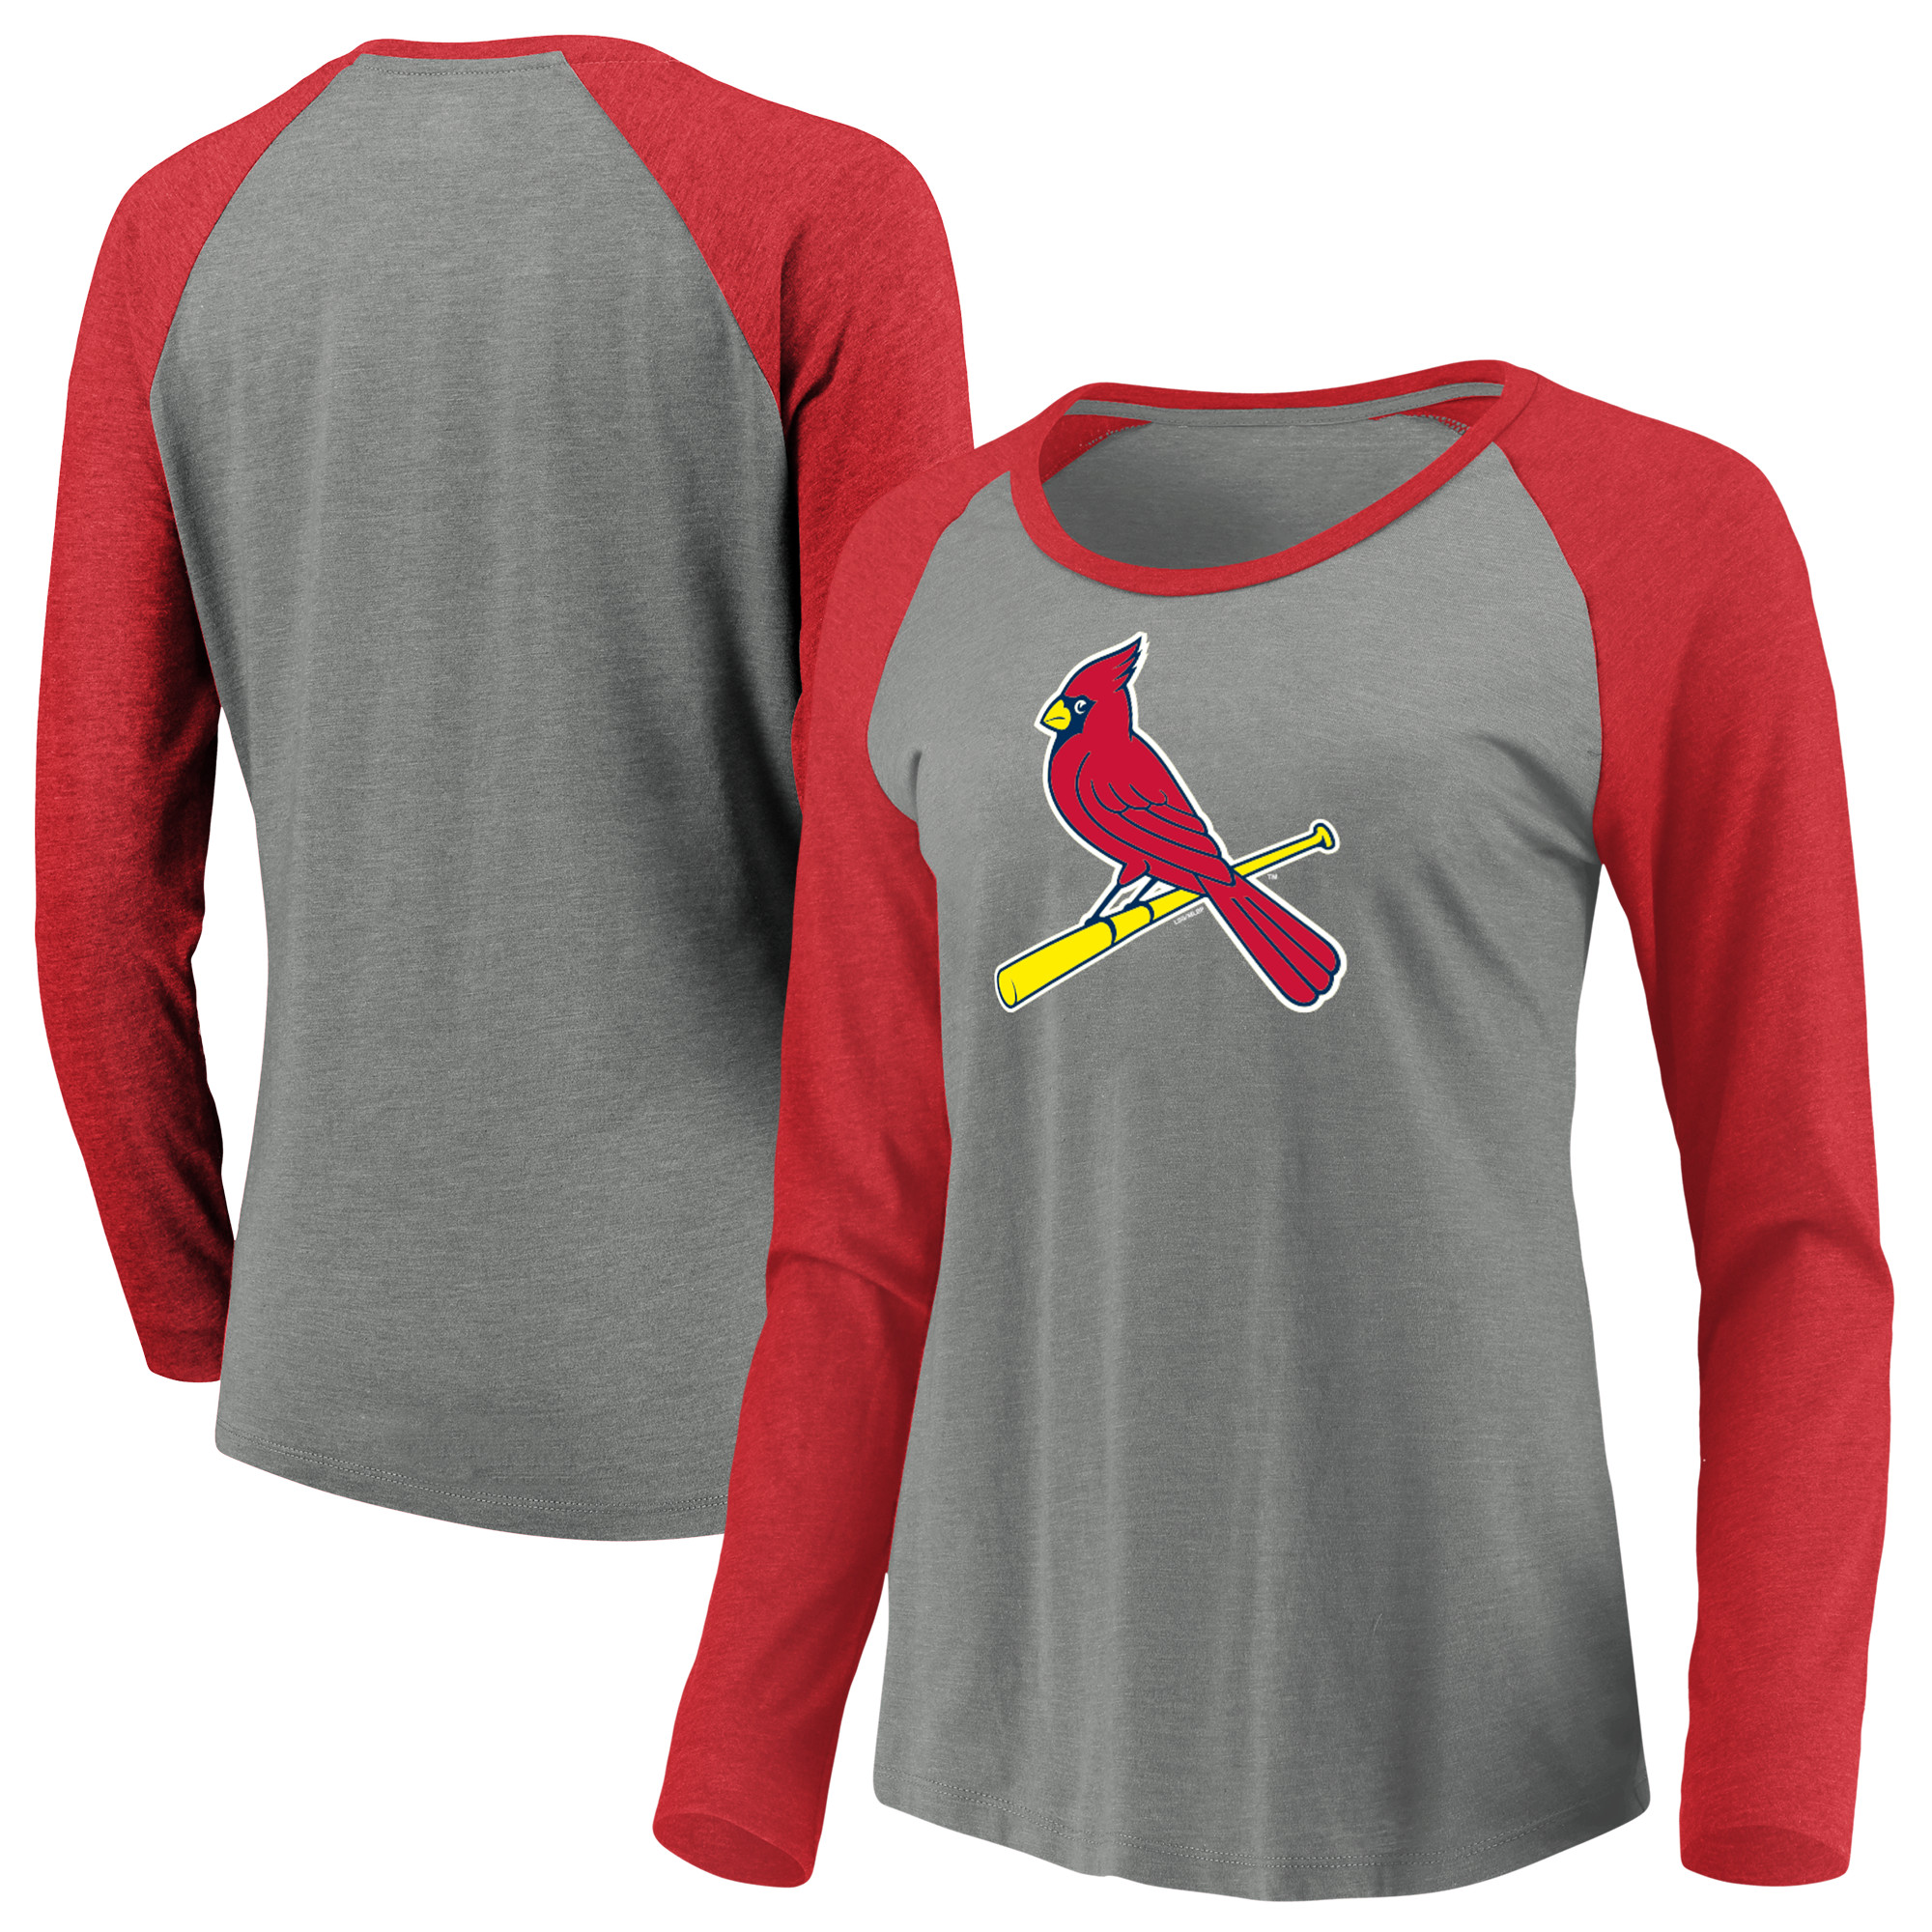 Women's Majestic Heathered Gray St. Louis Cardinals Must Win Tri-Blend Raglan Long Sleeve T-Shirt